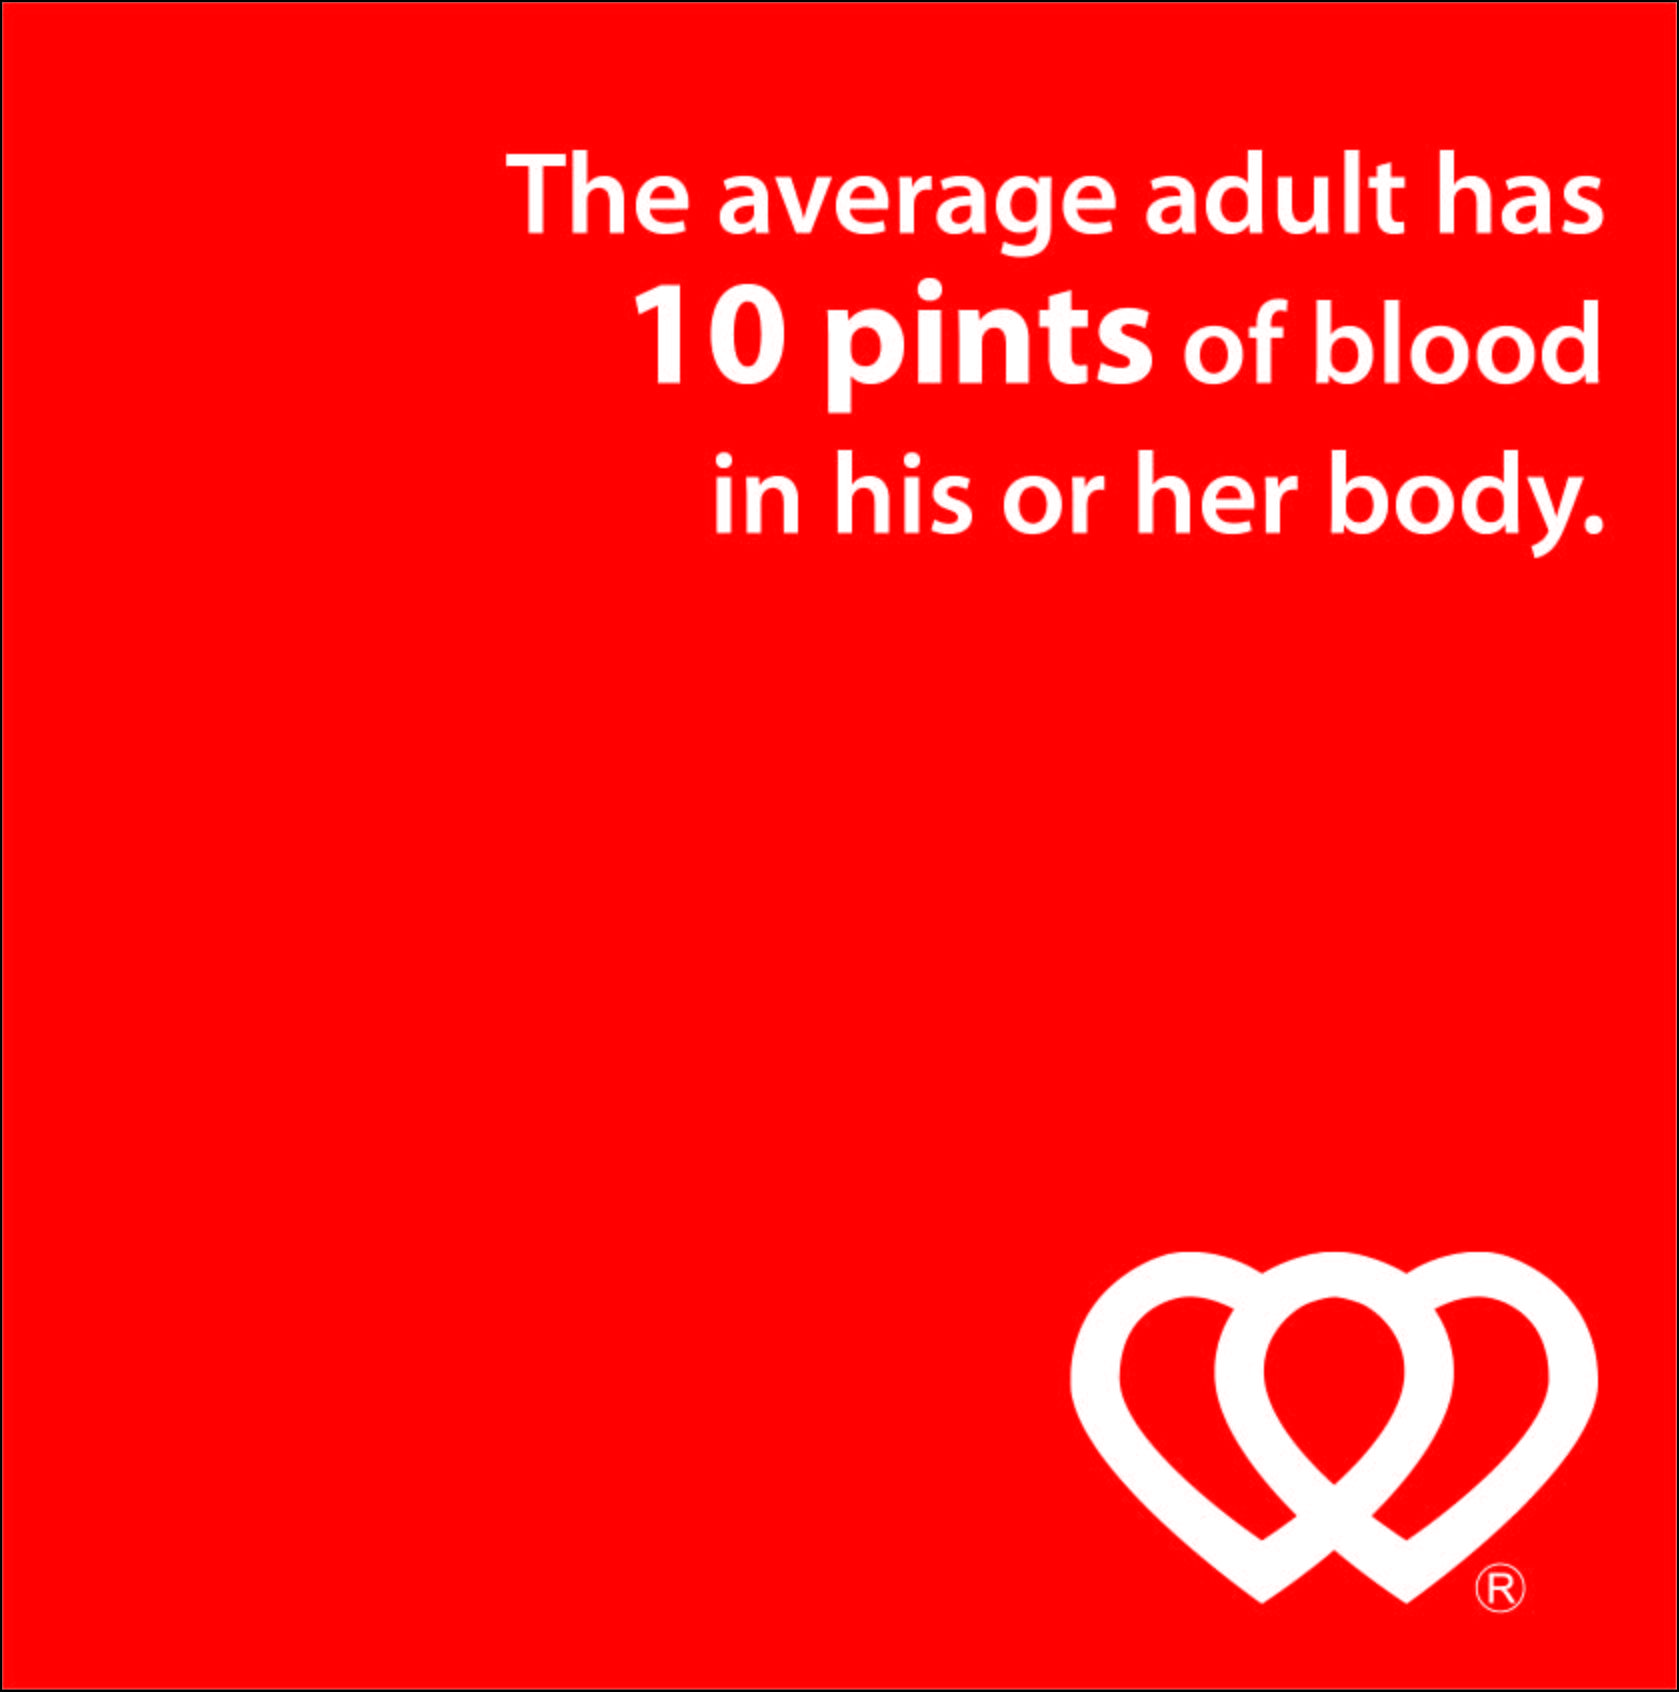 blood amount of in average adult